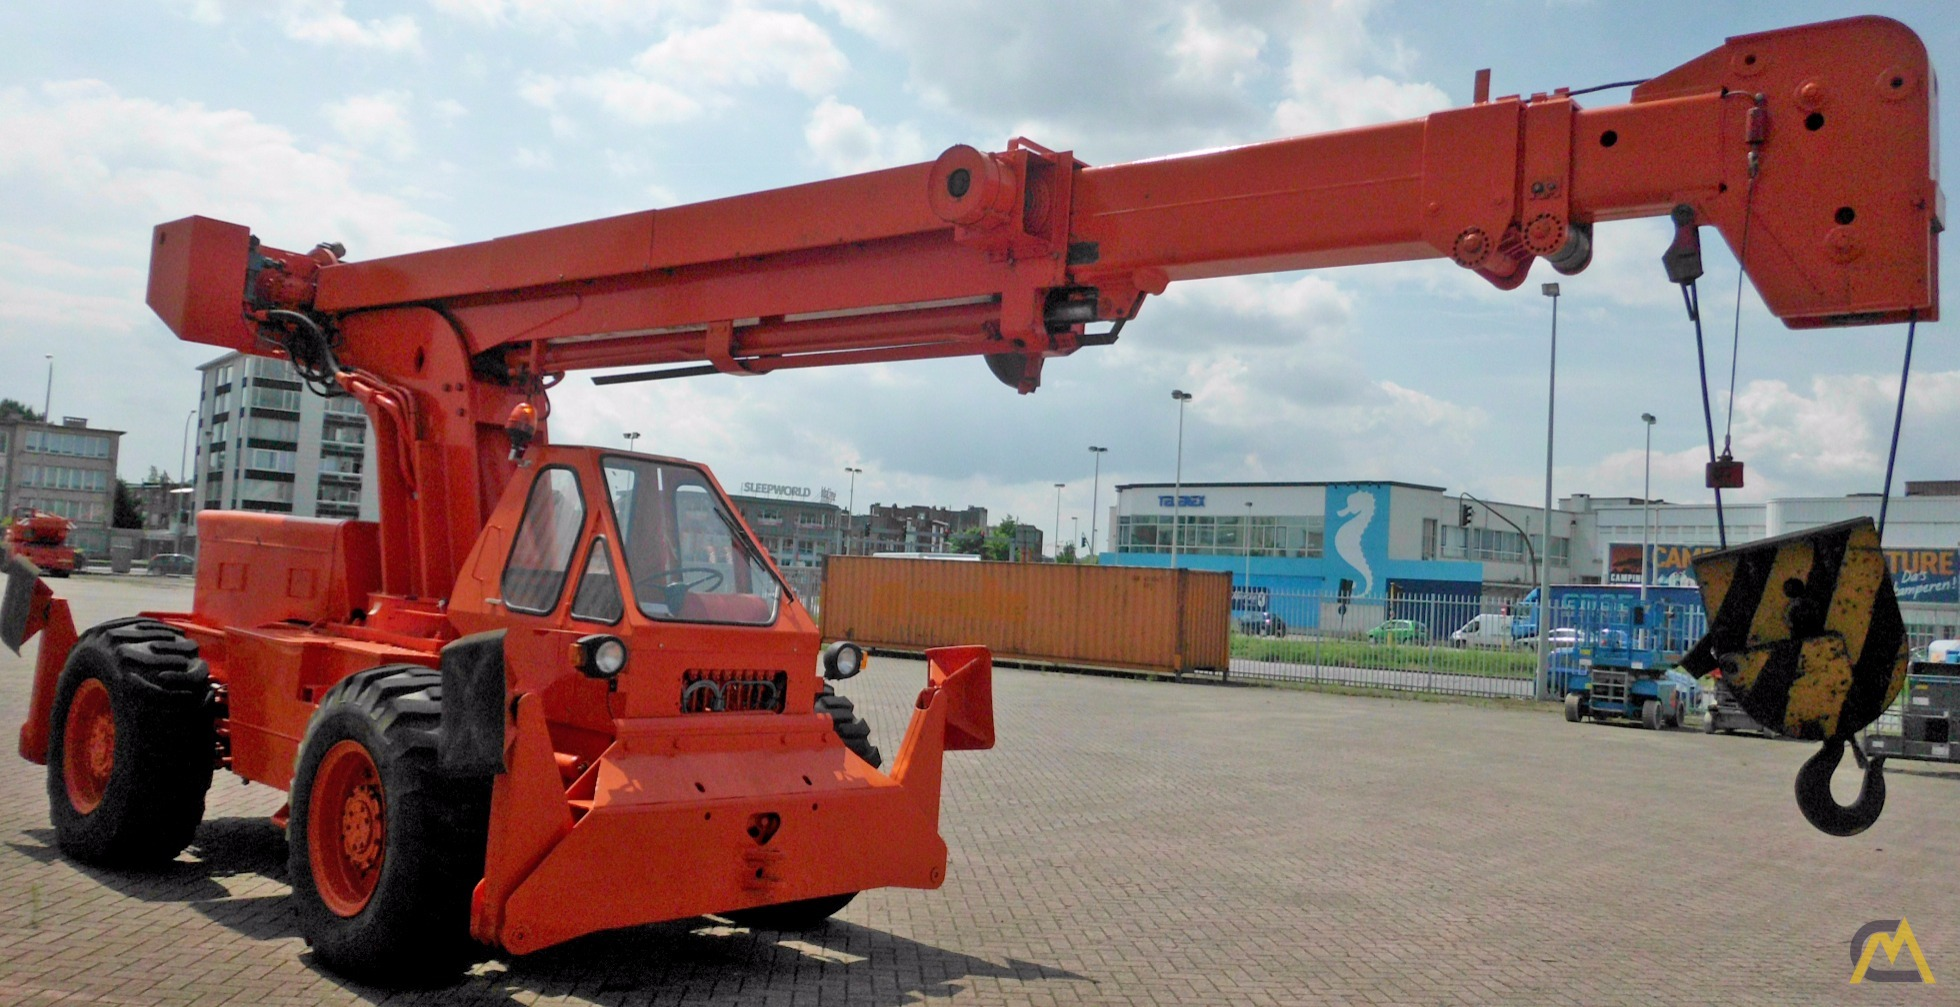 15t Galion 150A Down Cab Rough Terrain Crane 0